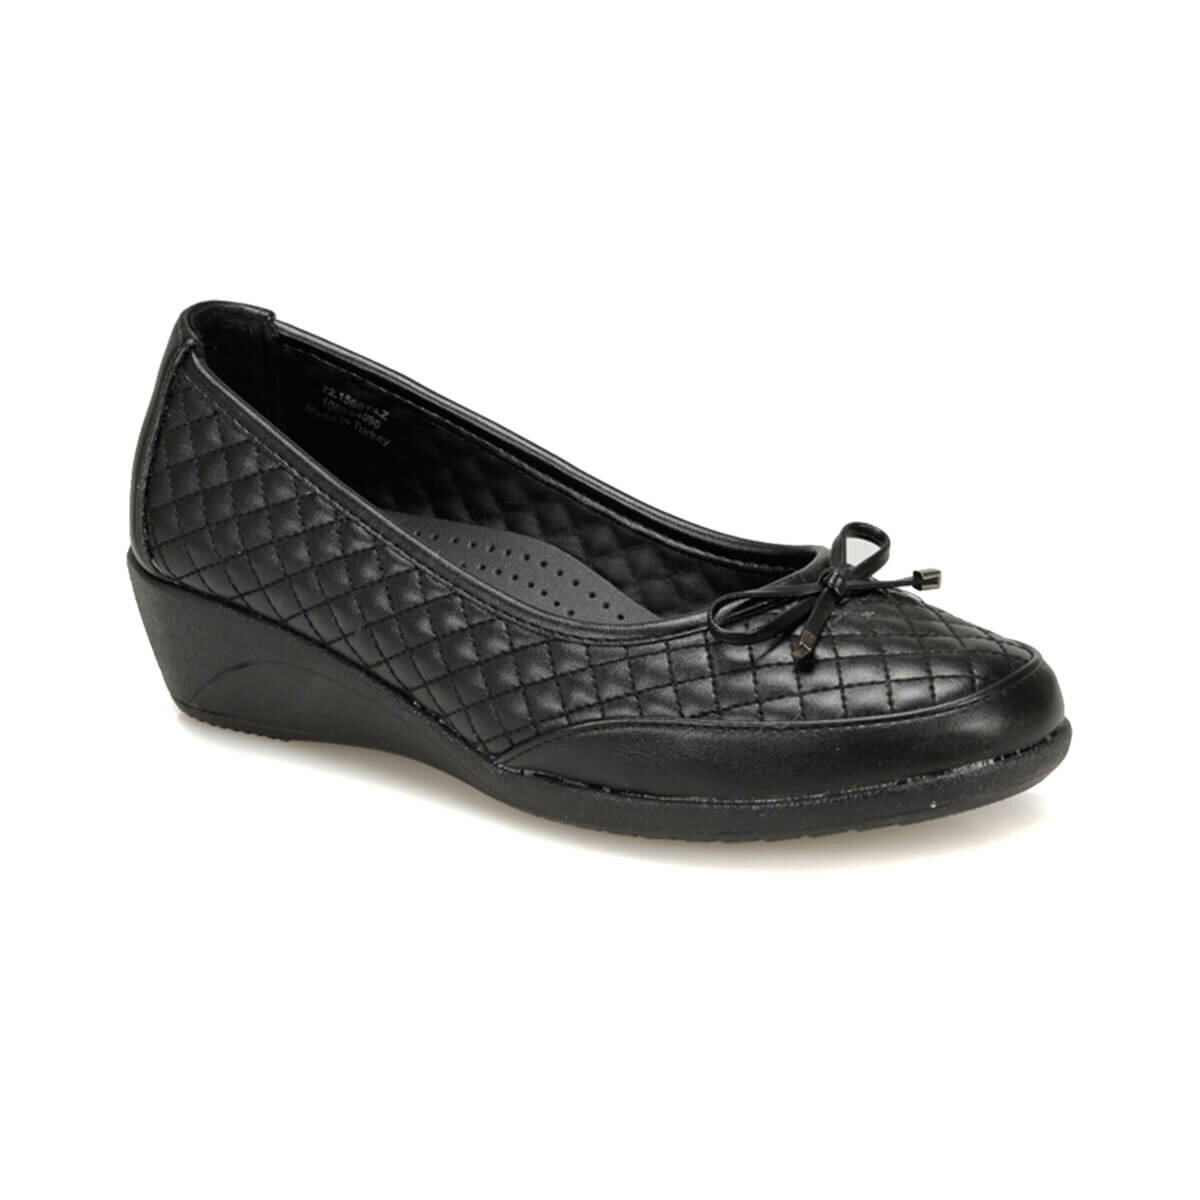 FLO 72.156074.Z Black Women Shoes Polaris